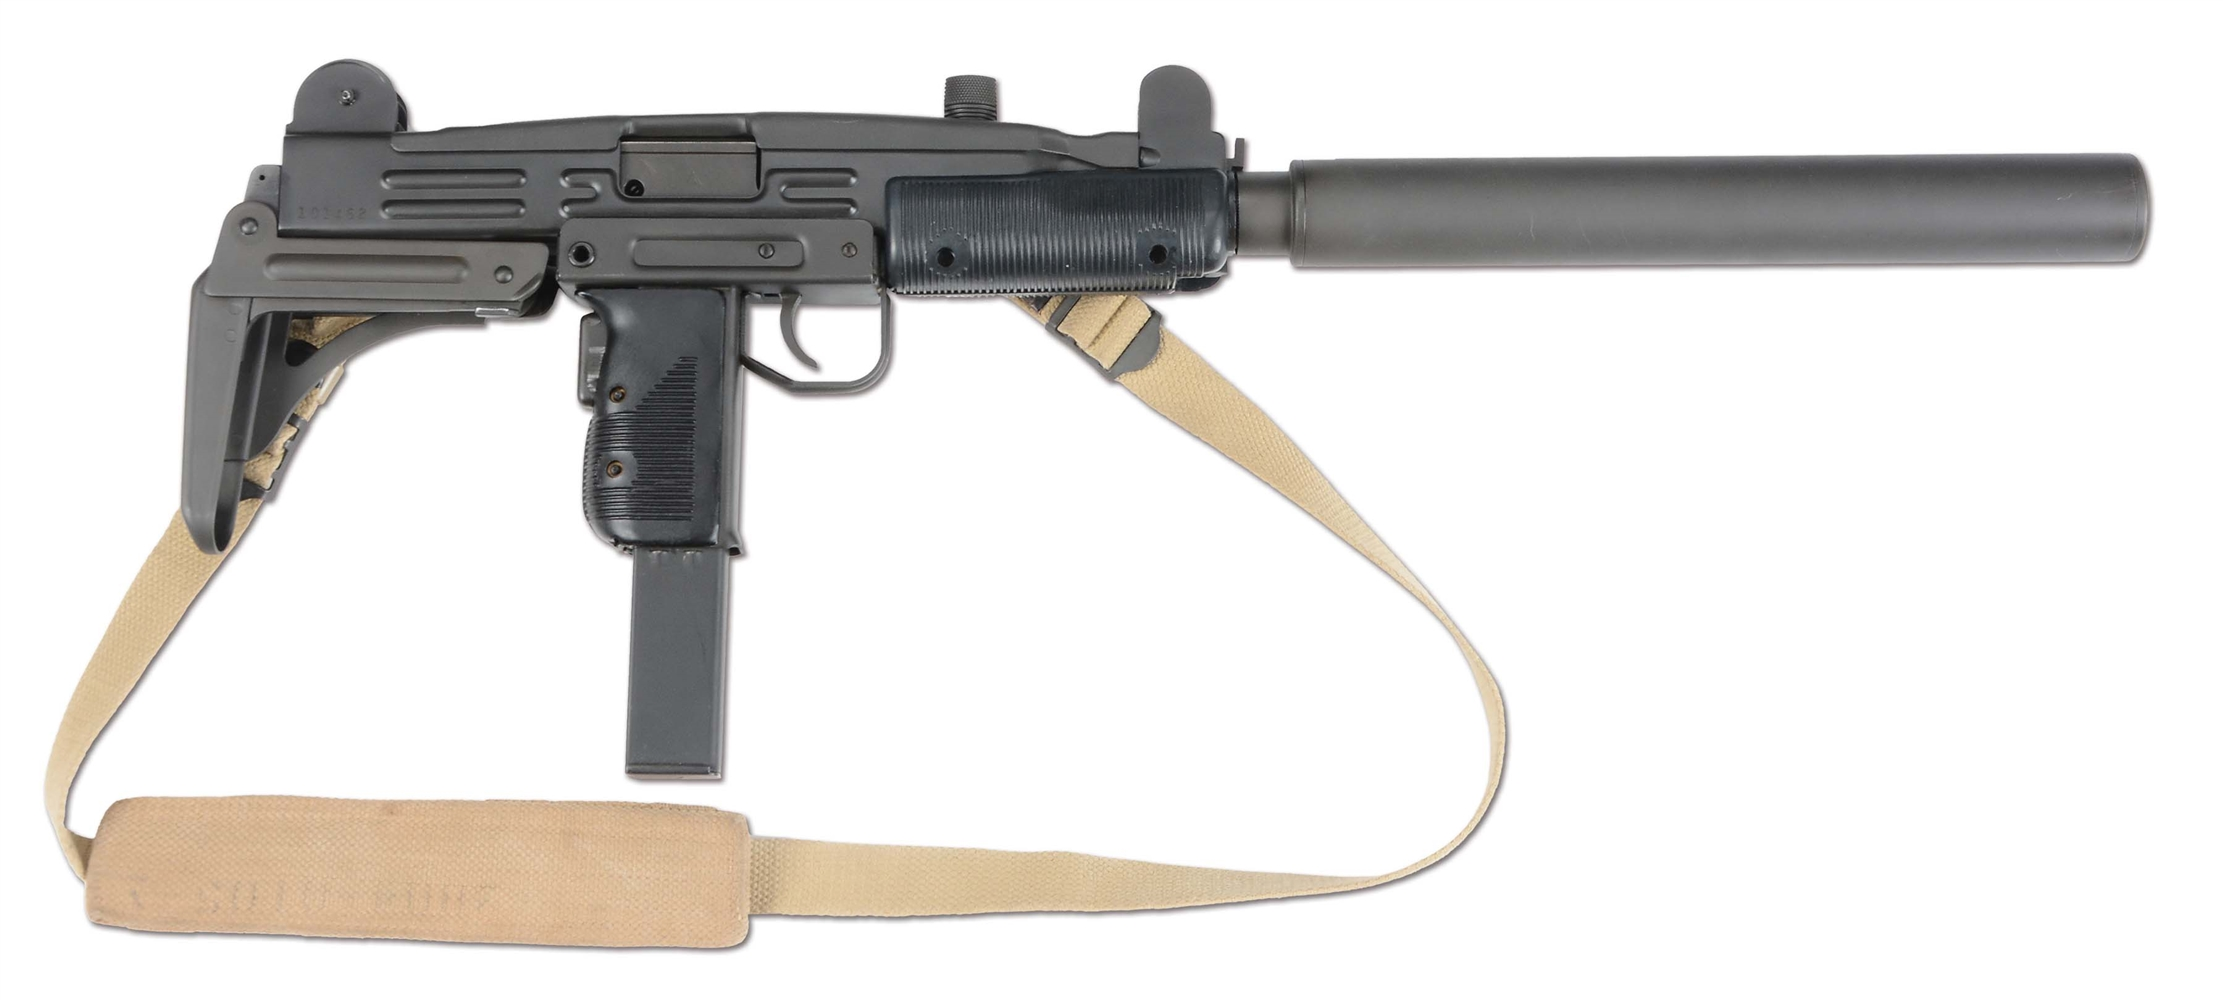 (N) GROUP INDUSTRIES HR 4332 UZI MACHINE GUN WITH CSS MODEL 200 SUPPRESSOR (FULLY TRANSFERABLE)